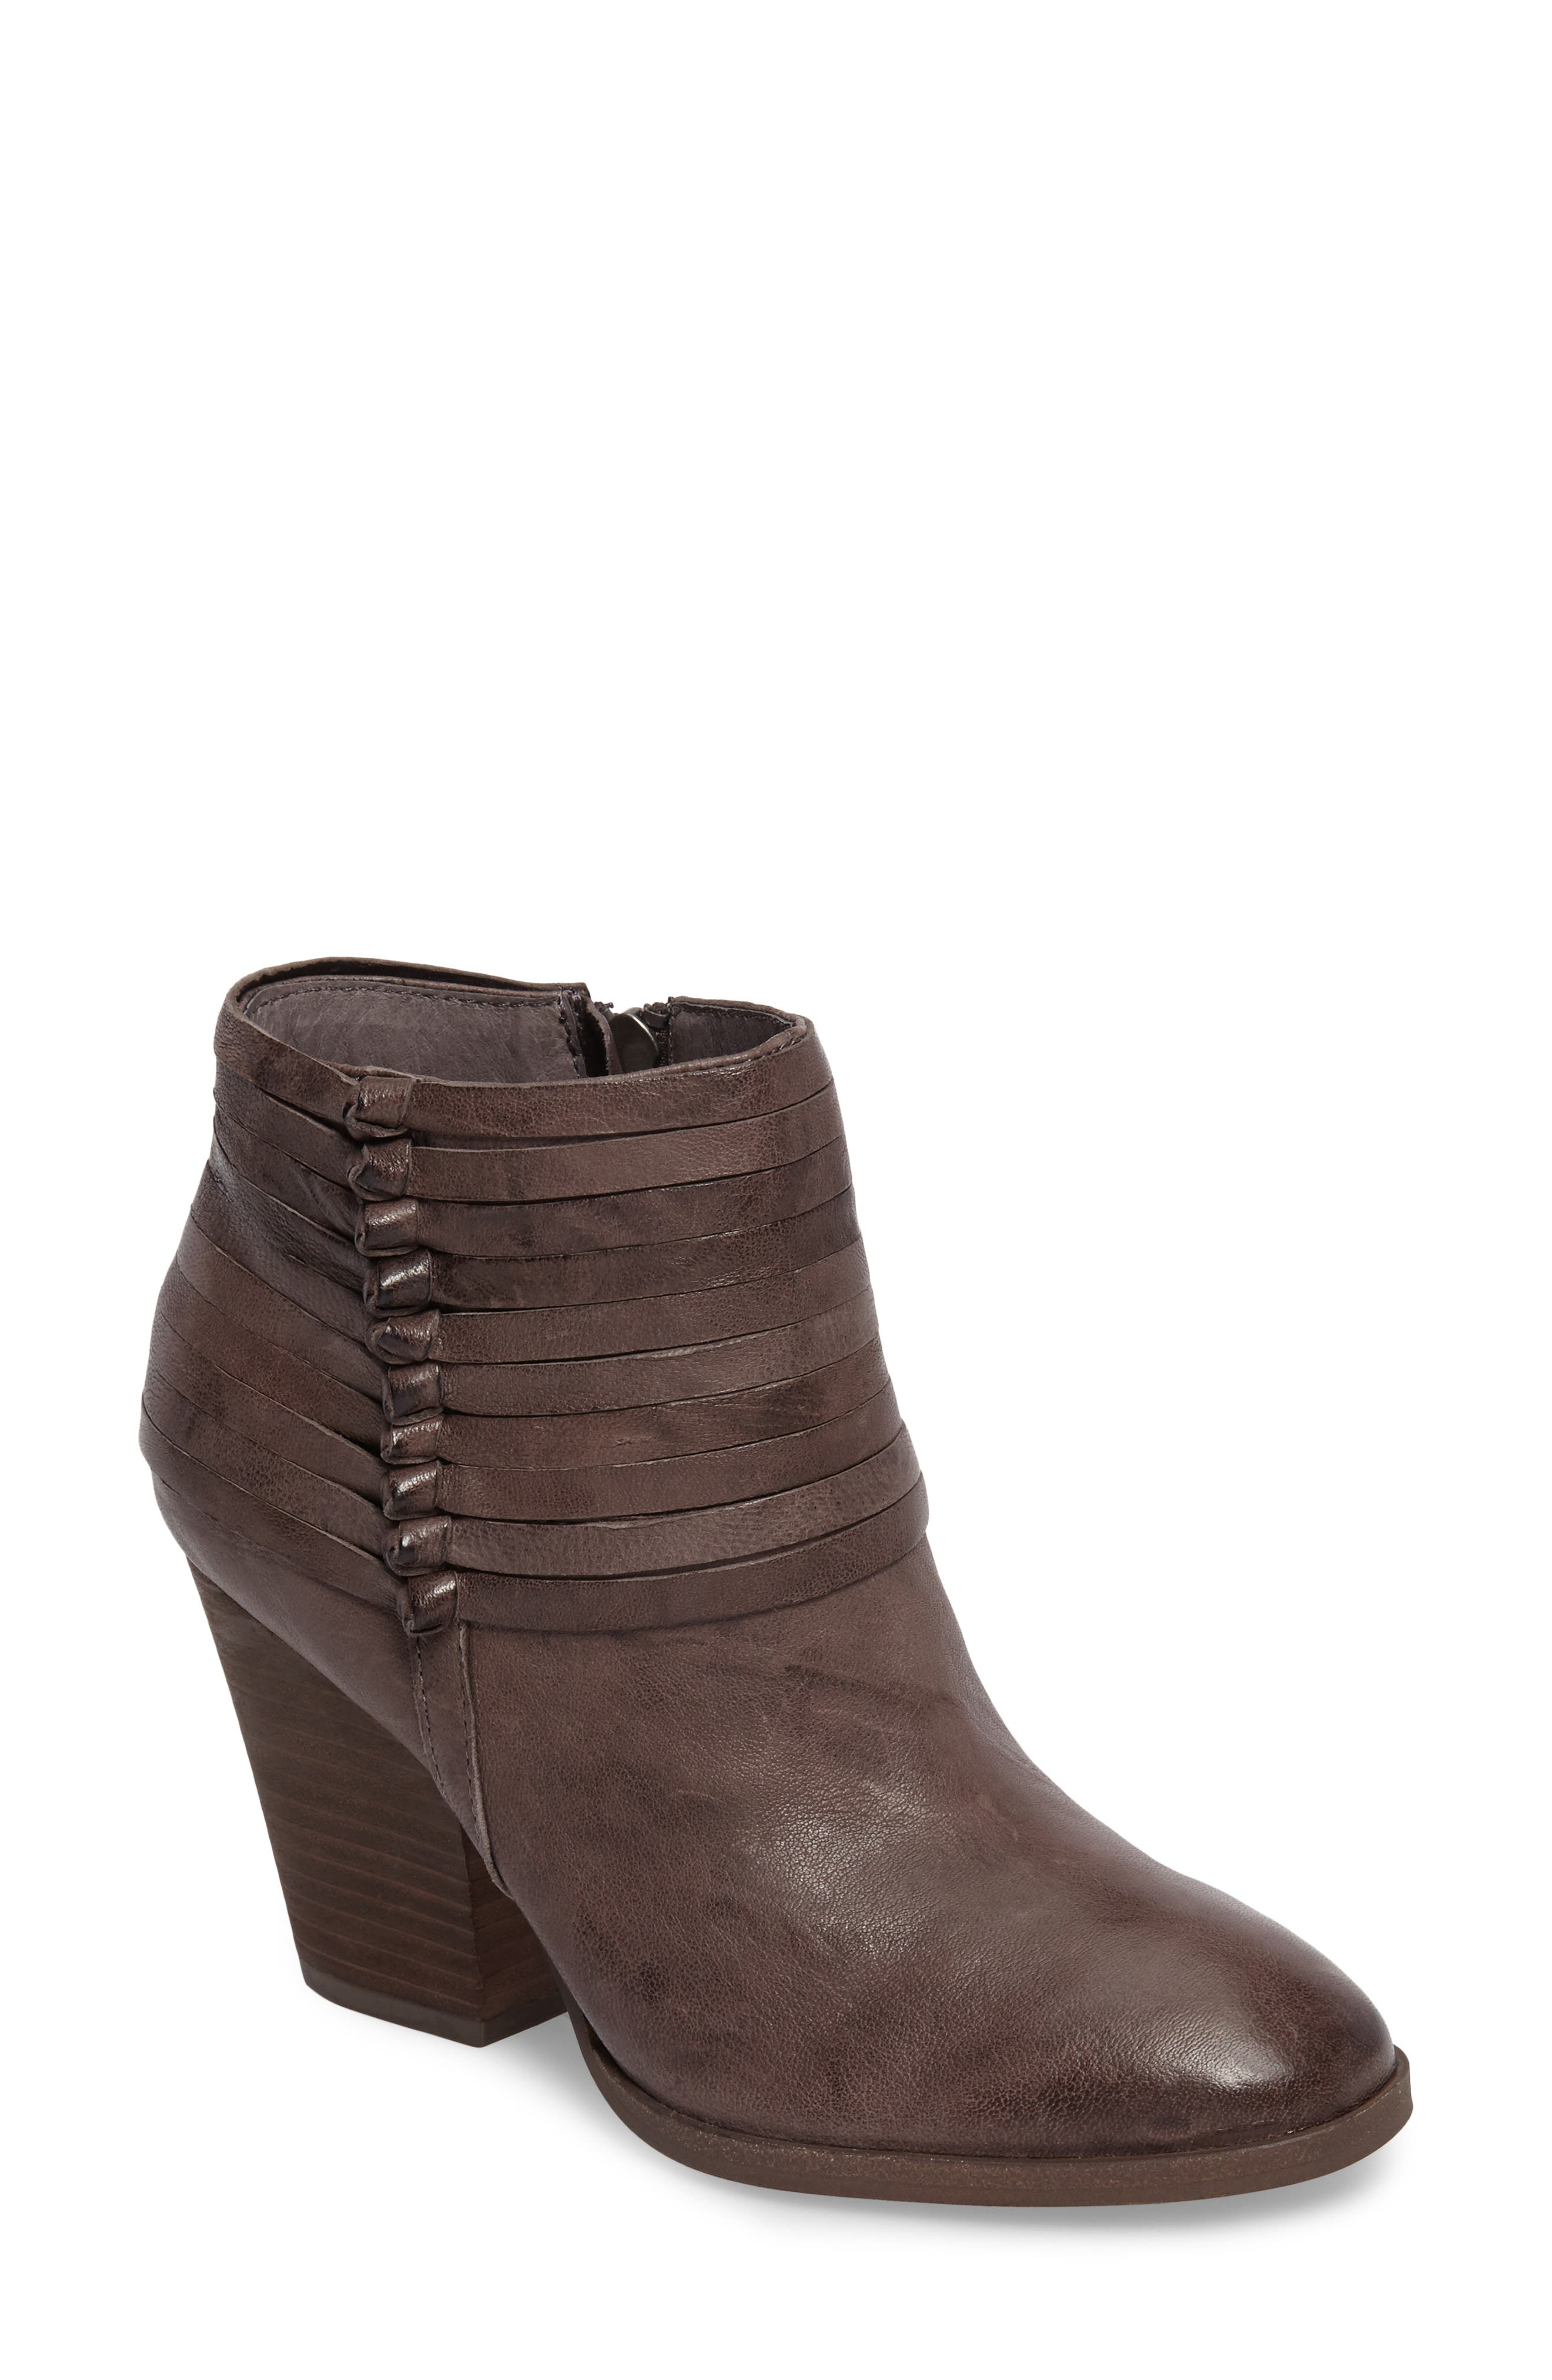 Lander Strappy Bootie,                         Main,                         color, Cemento Grey Leather